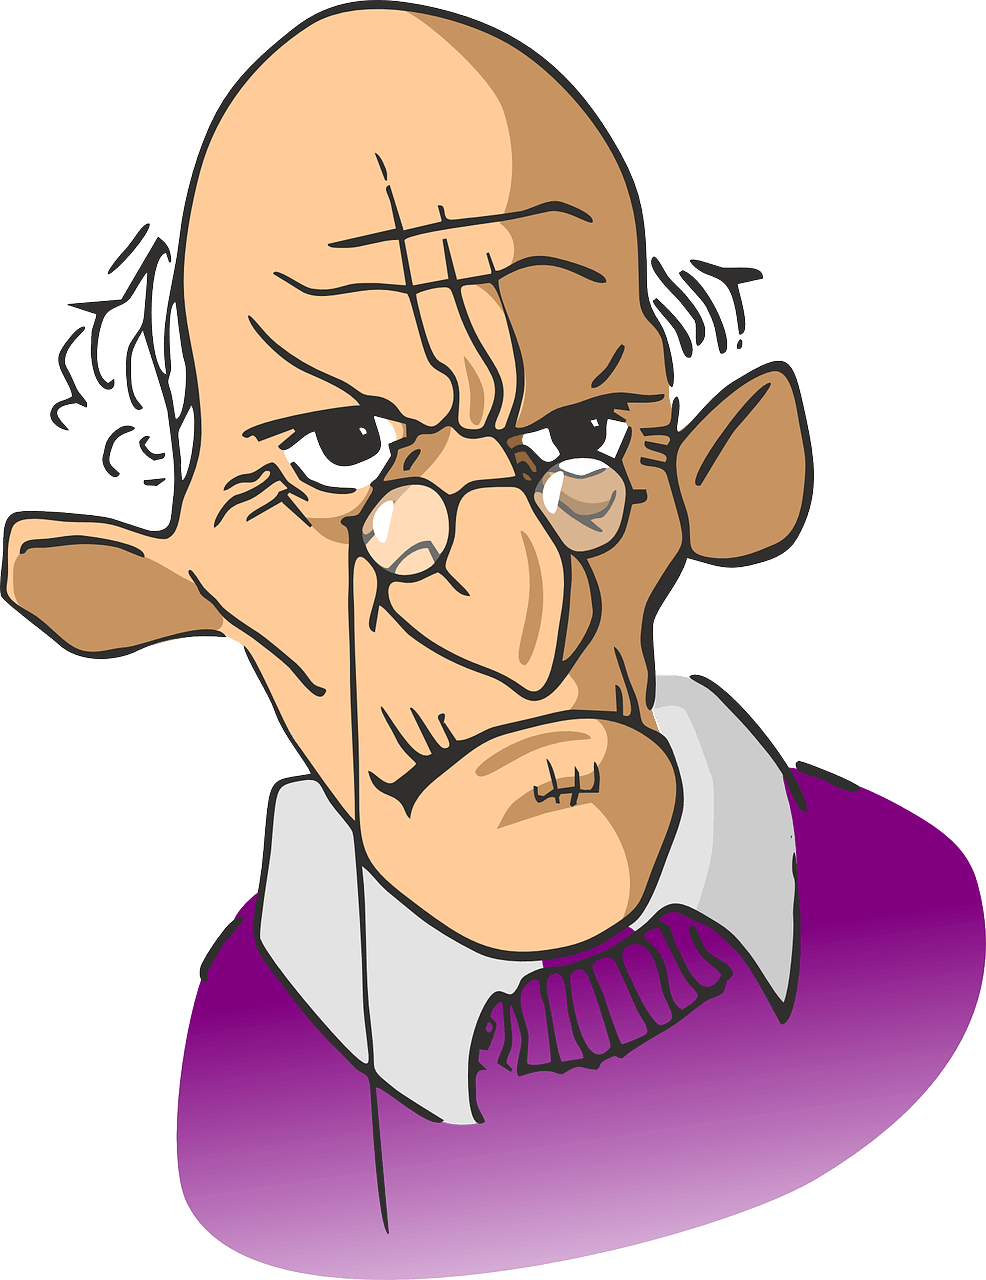 Old clipart retired person At and  152866_1280 Figure